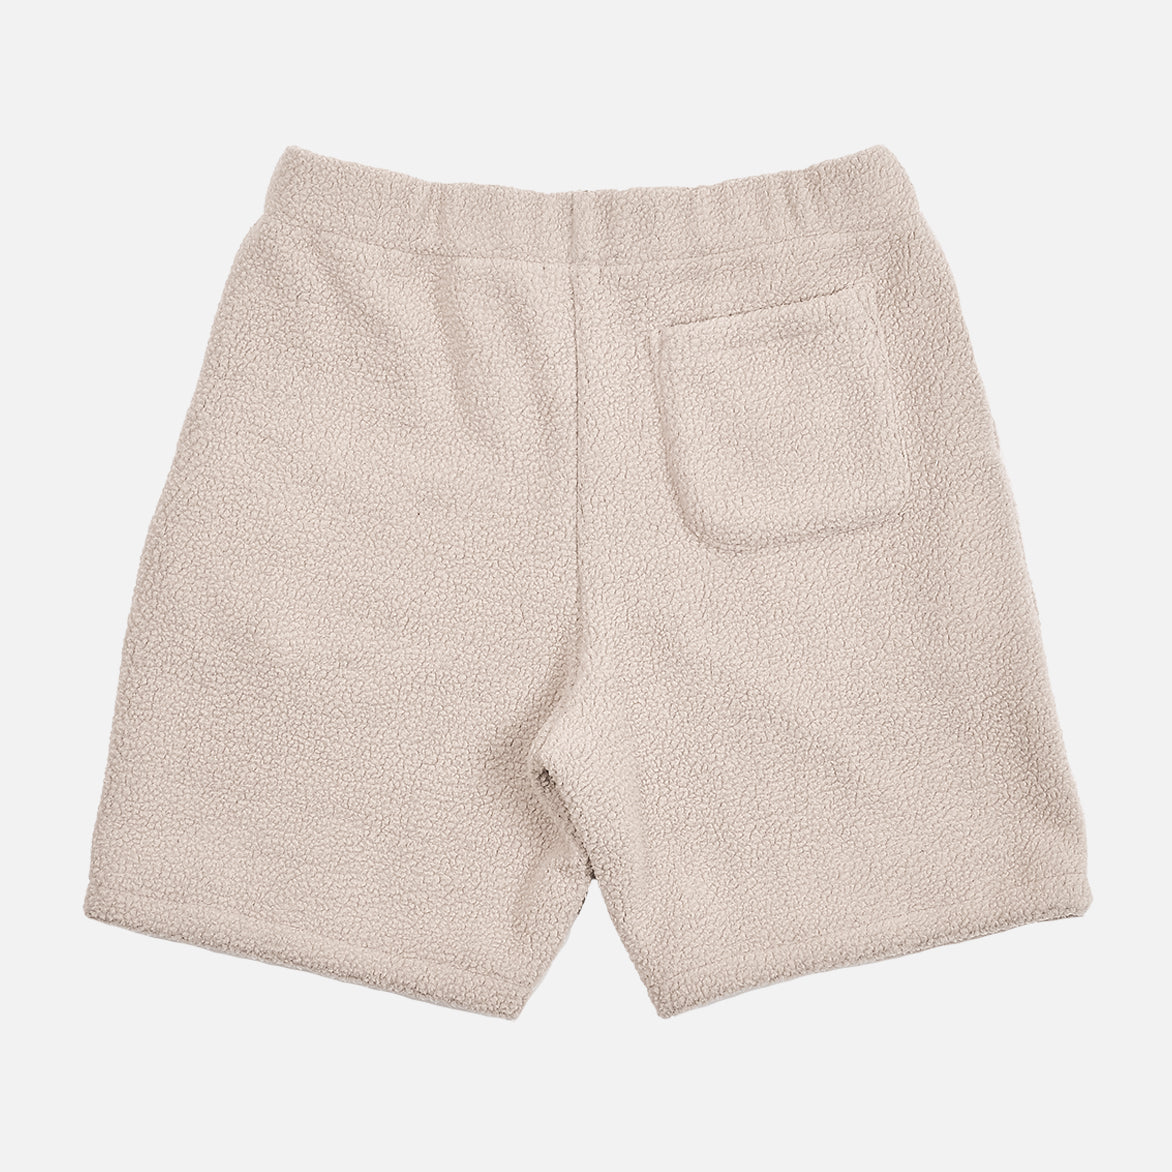 TWO RIVERS SHERPA SHORT - OATMEAL